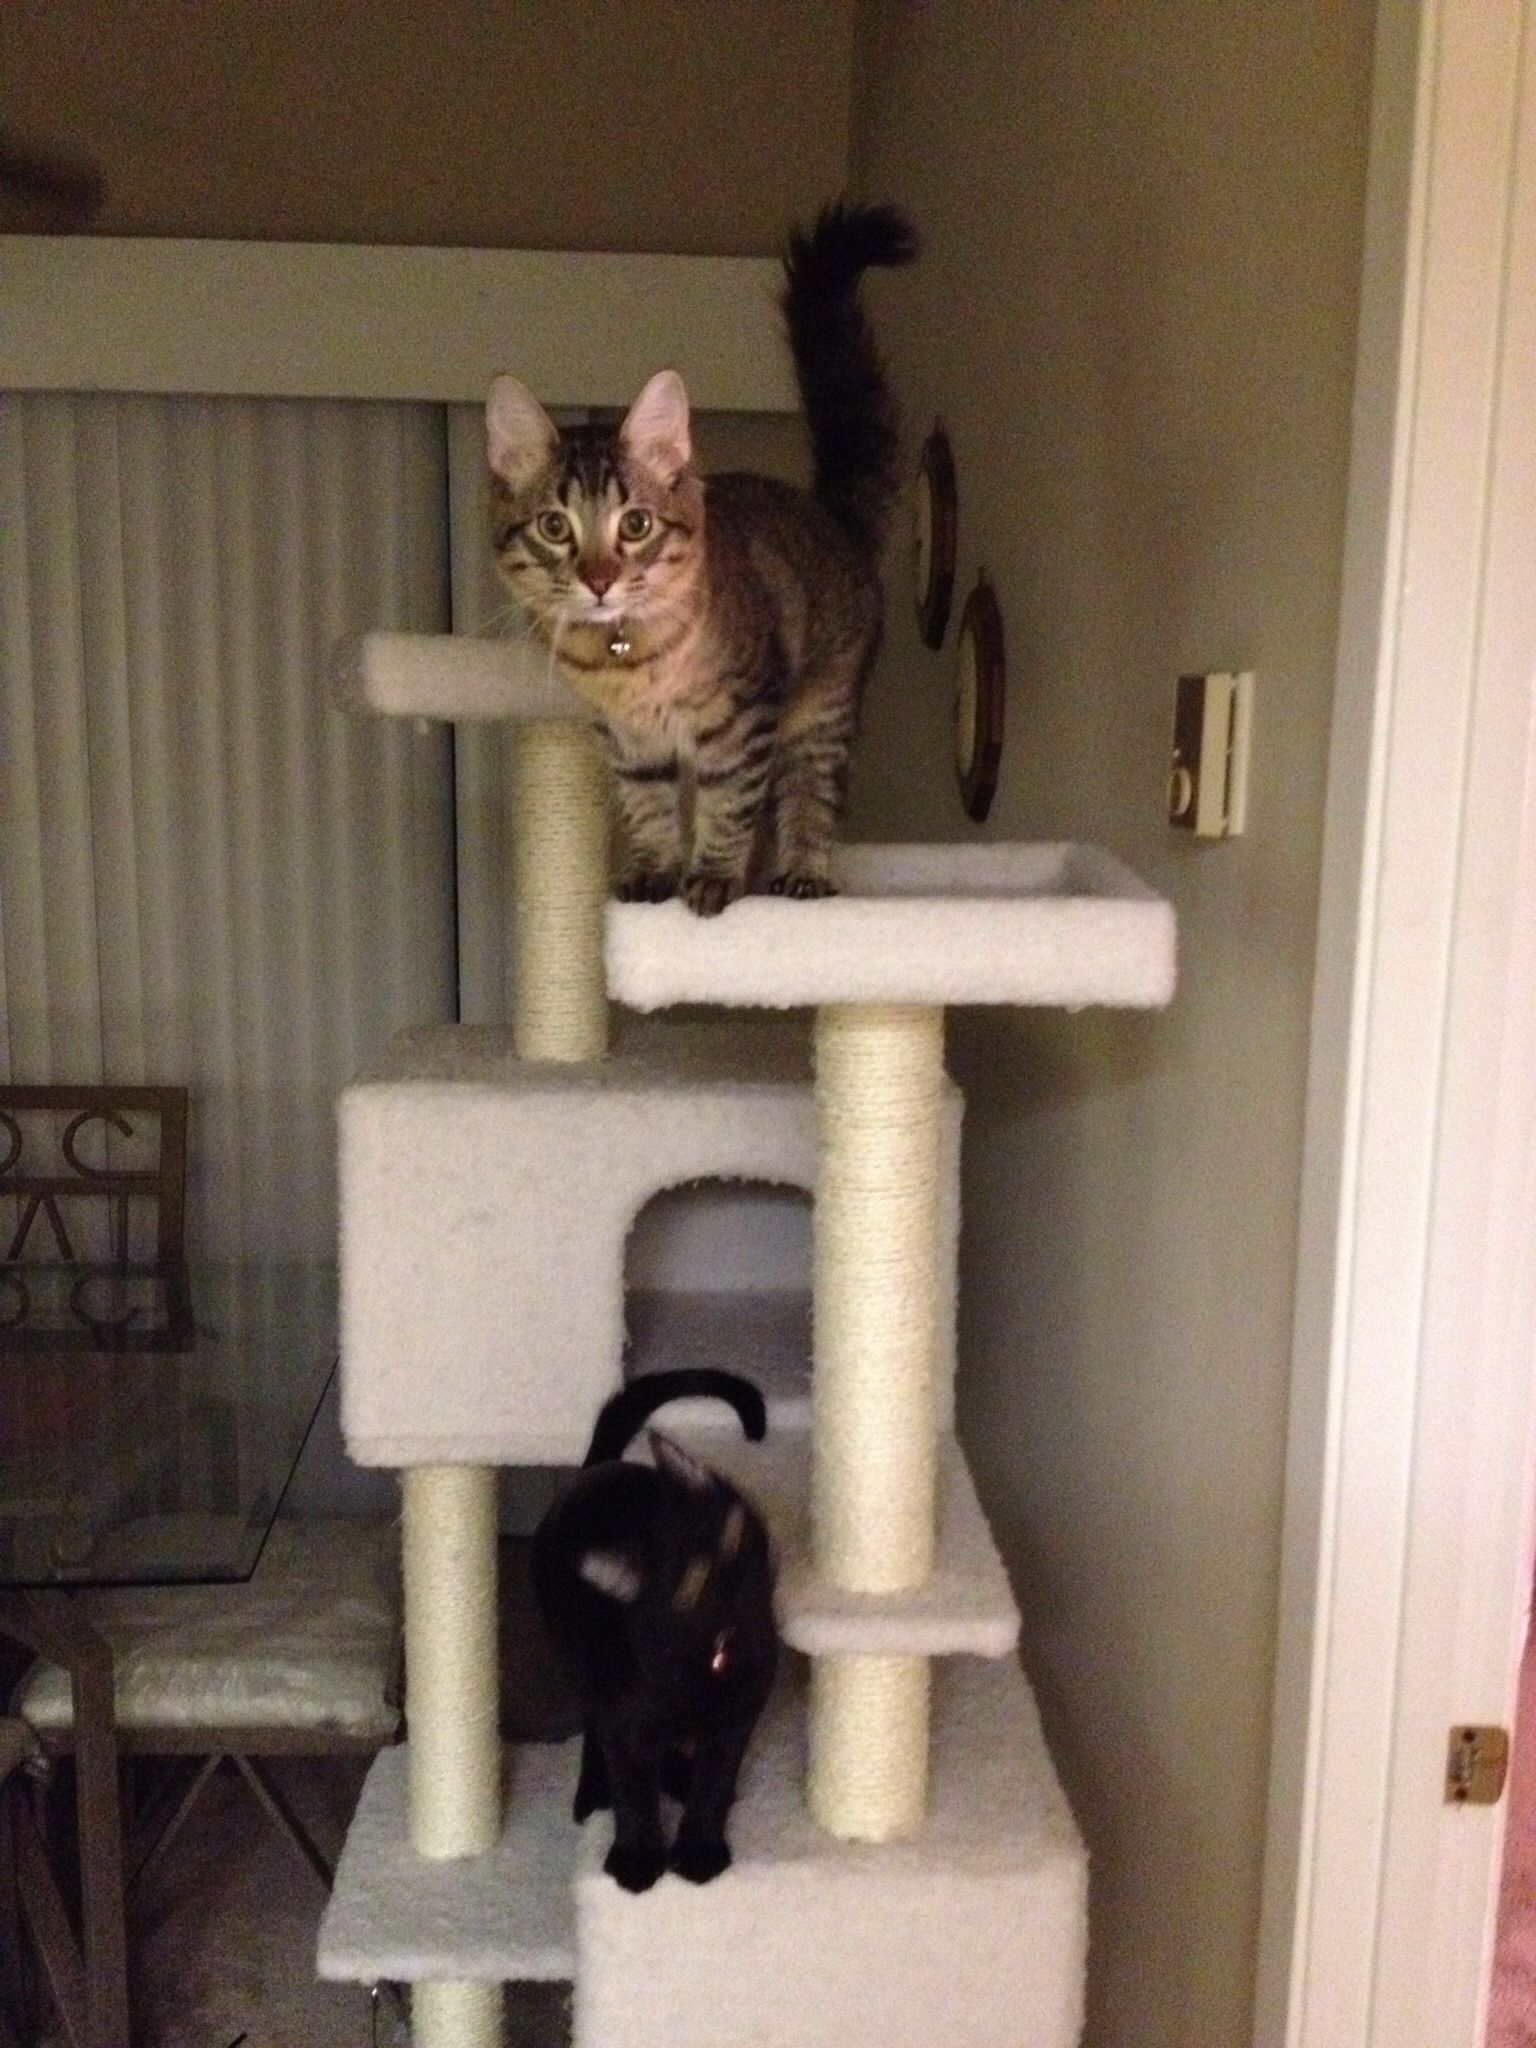 Both Of Them Playing On Their Cat Condo So Spoiled Cat Condo Kittens Tabby